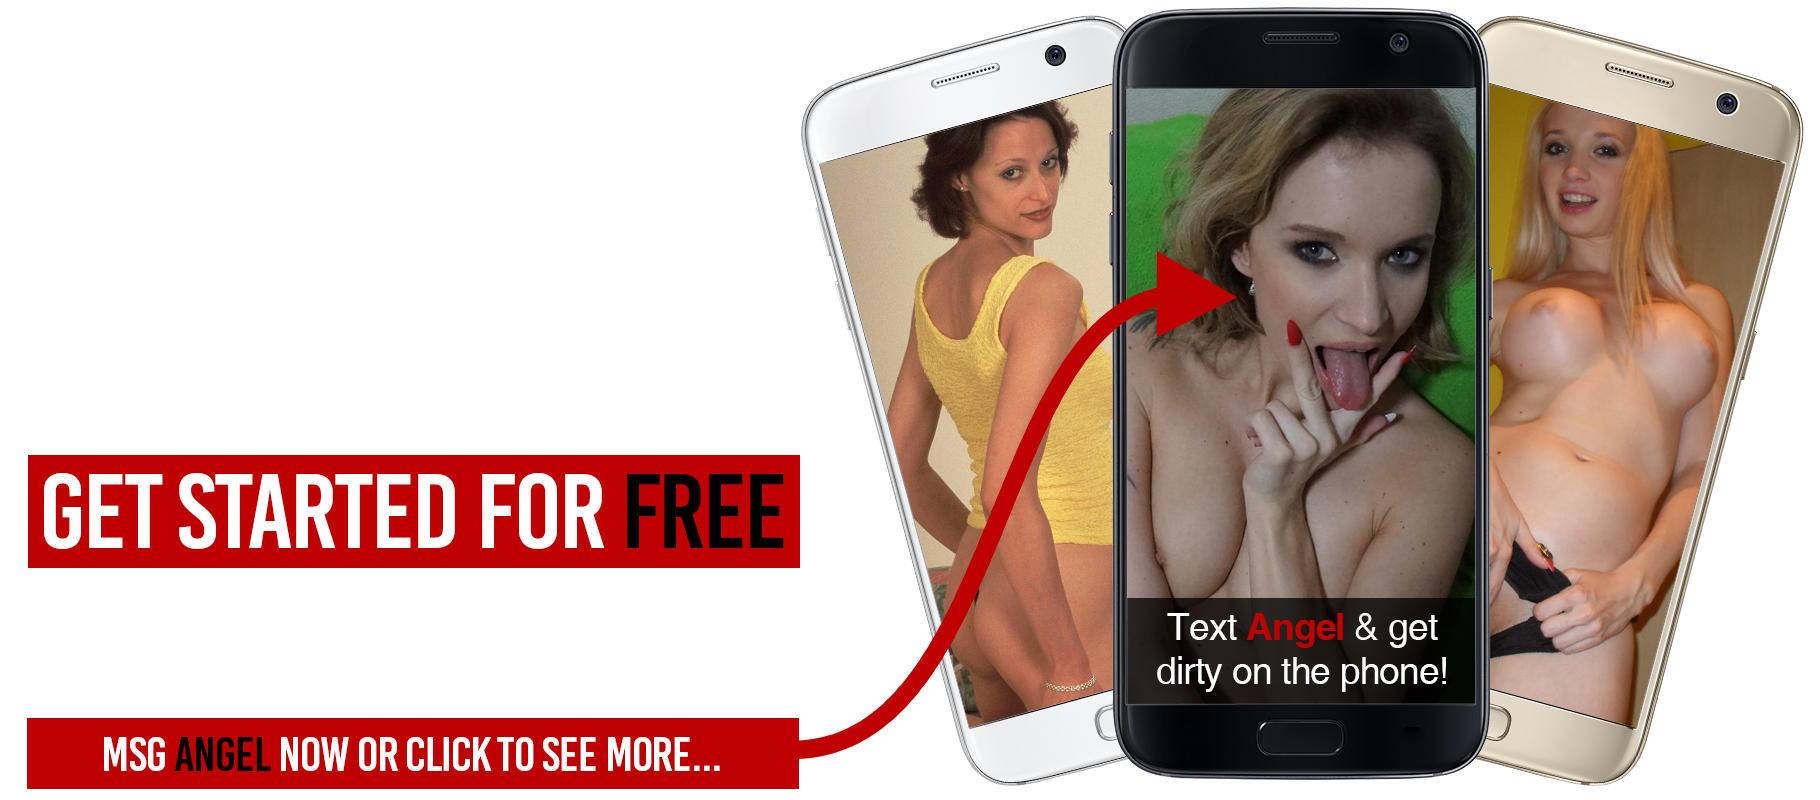 Cheaper Phone Sex